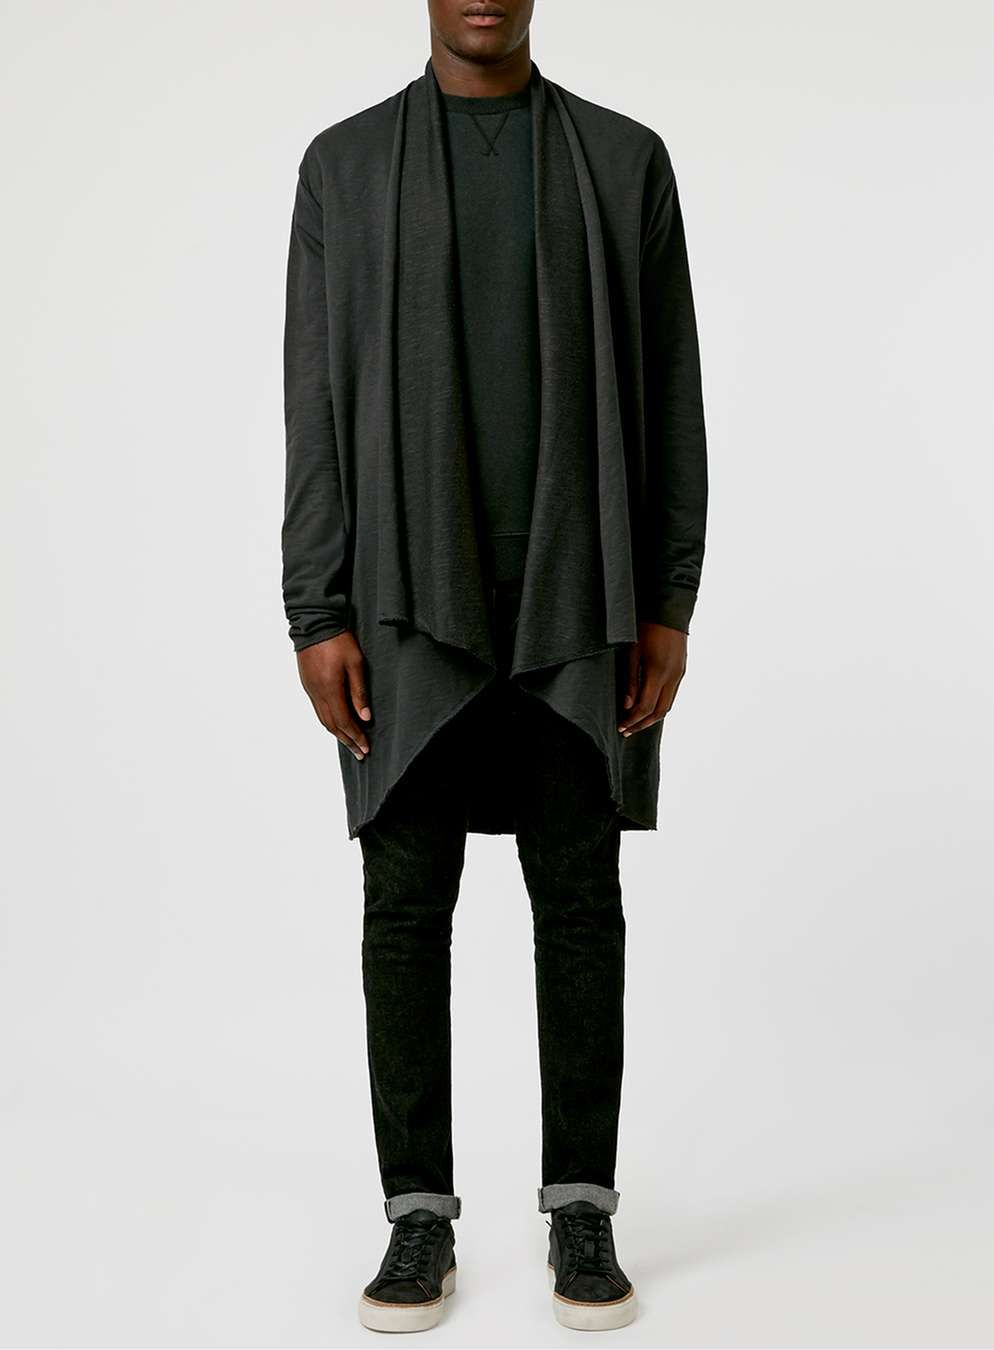 Washed Black Waterfall Cardigan - Men's Jumpers & Cardigans - Clothing